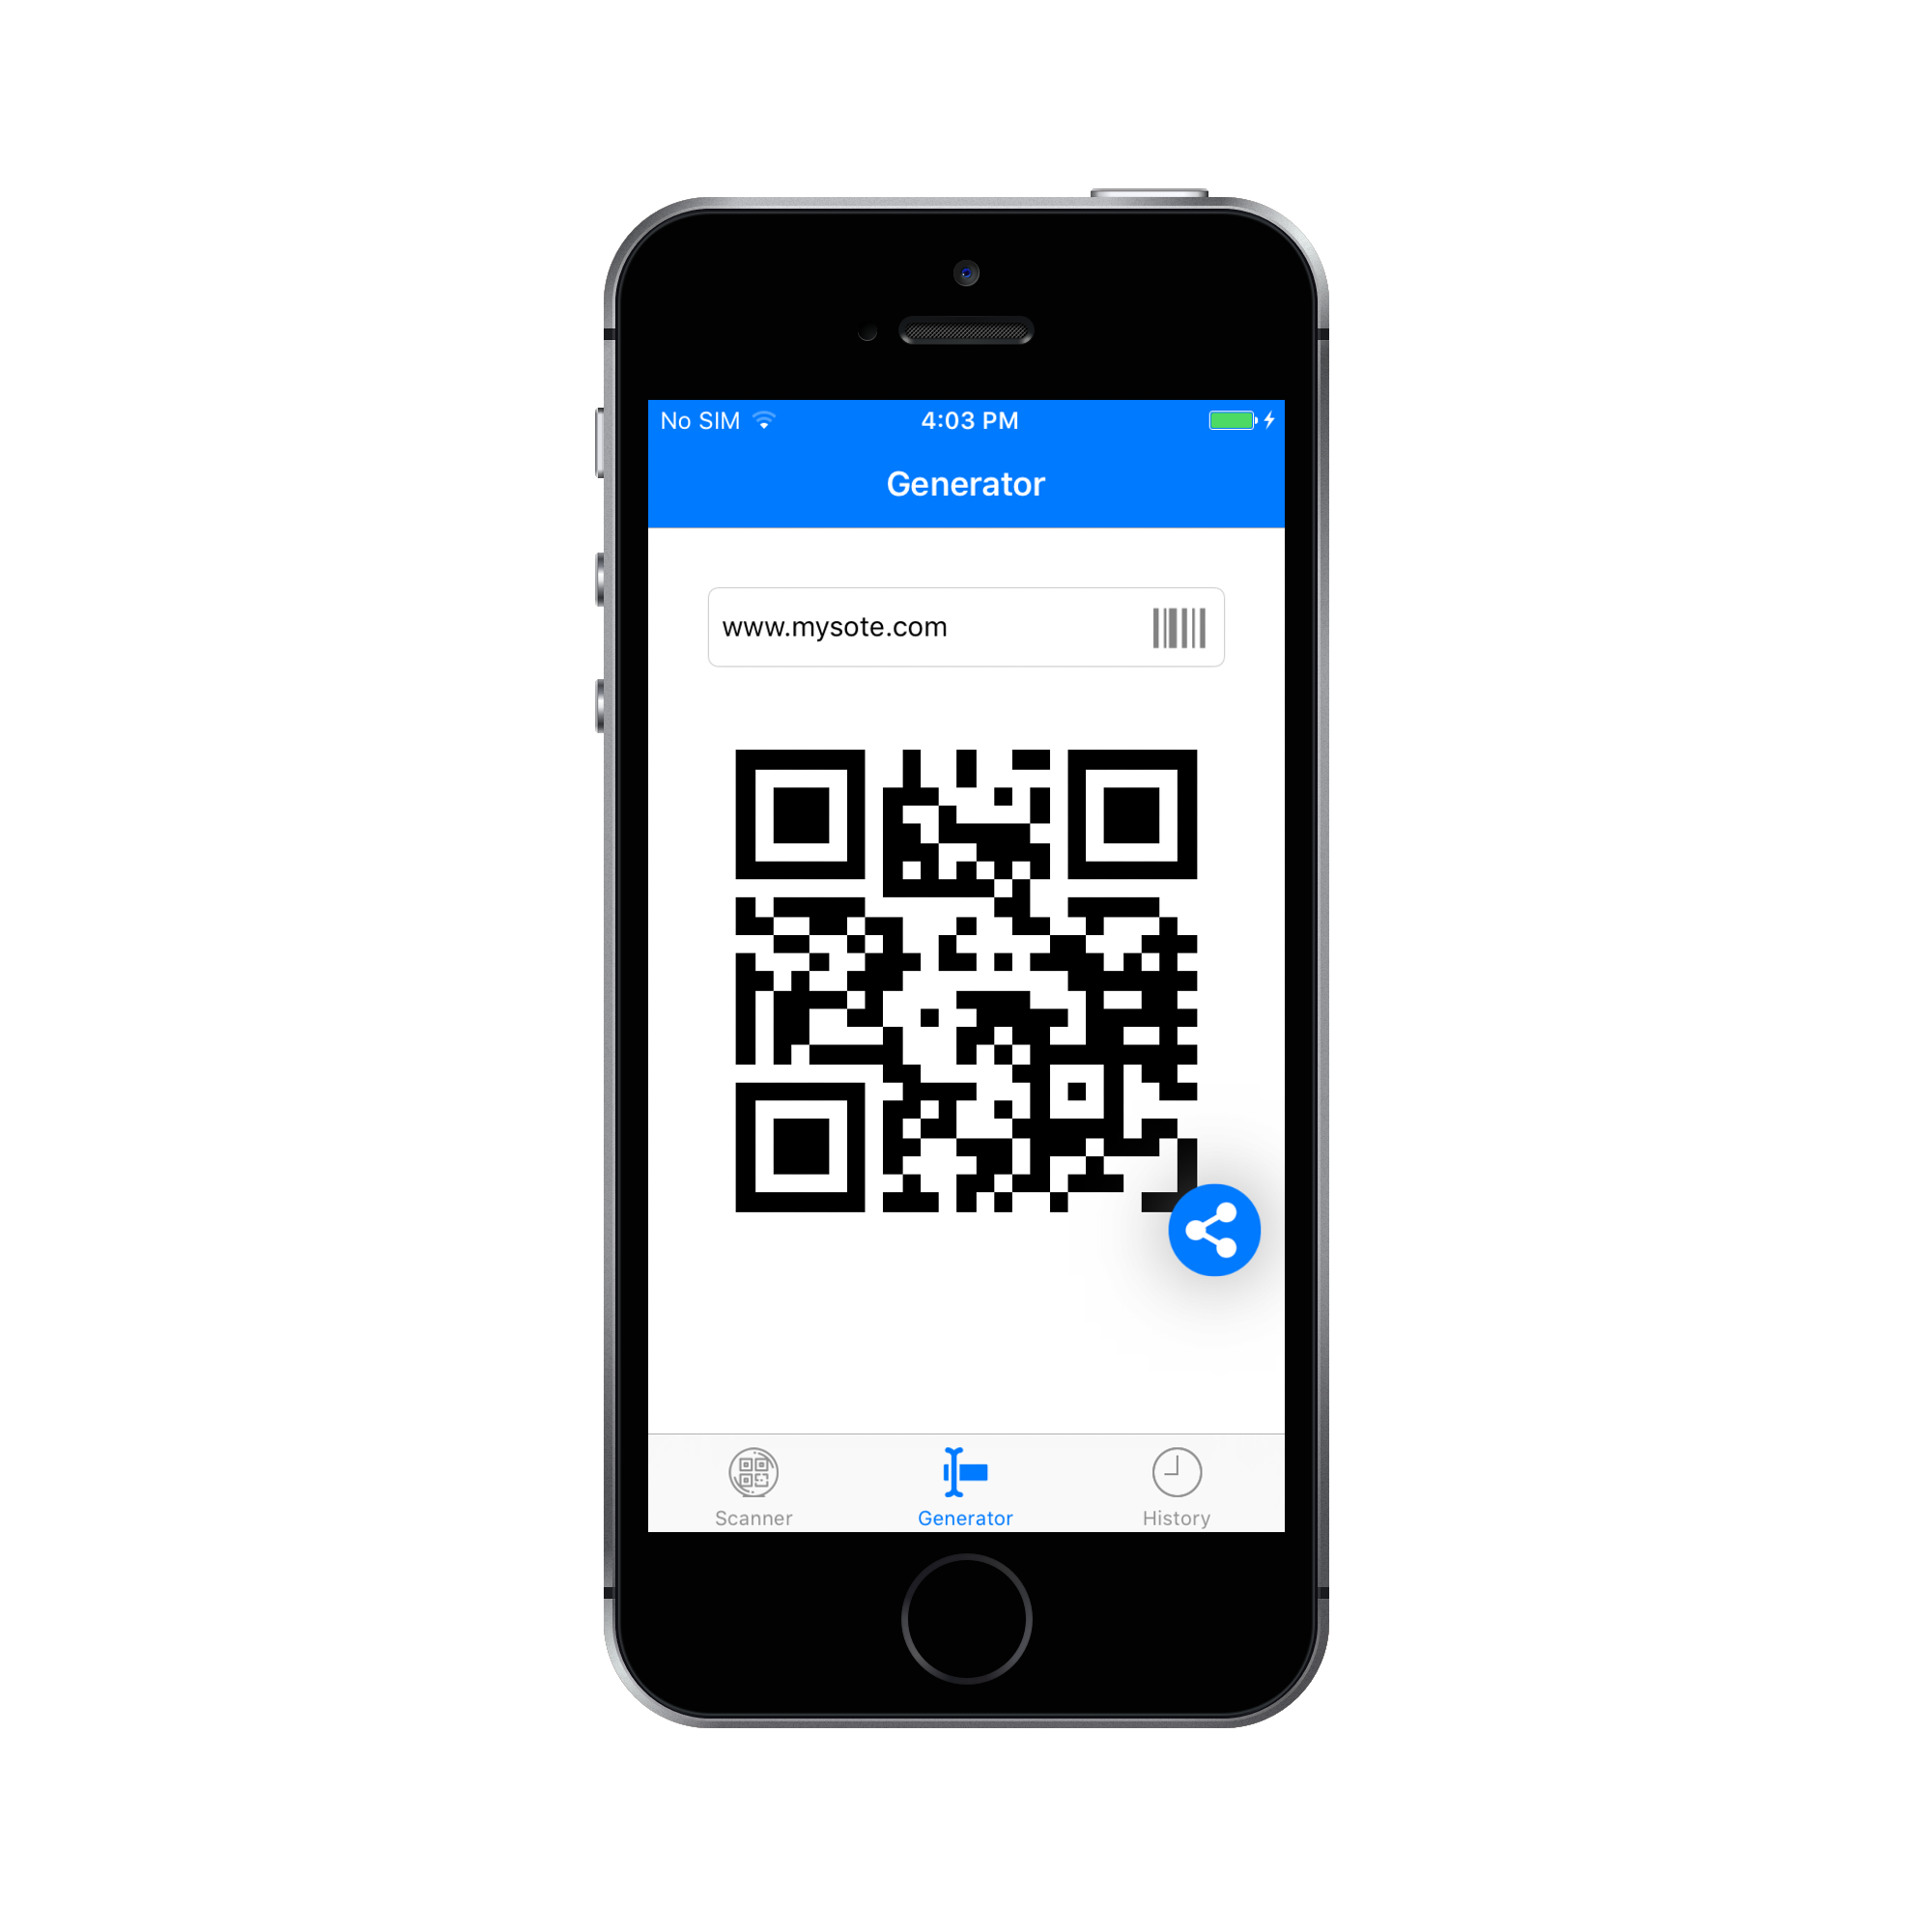 QR Code & Barcode Scanner and Generator for iOS Swift with AdMob